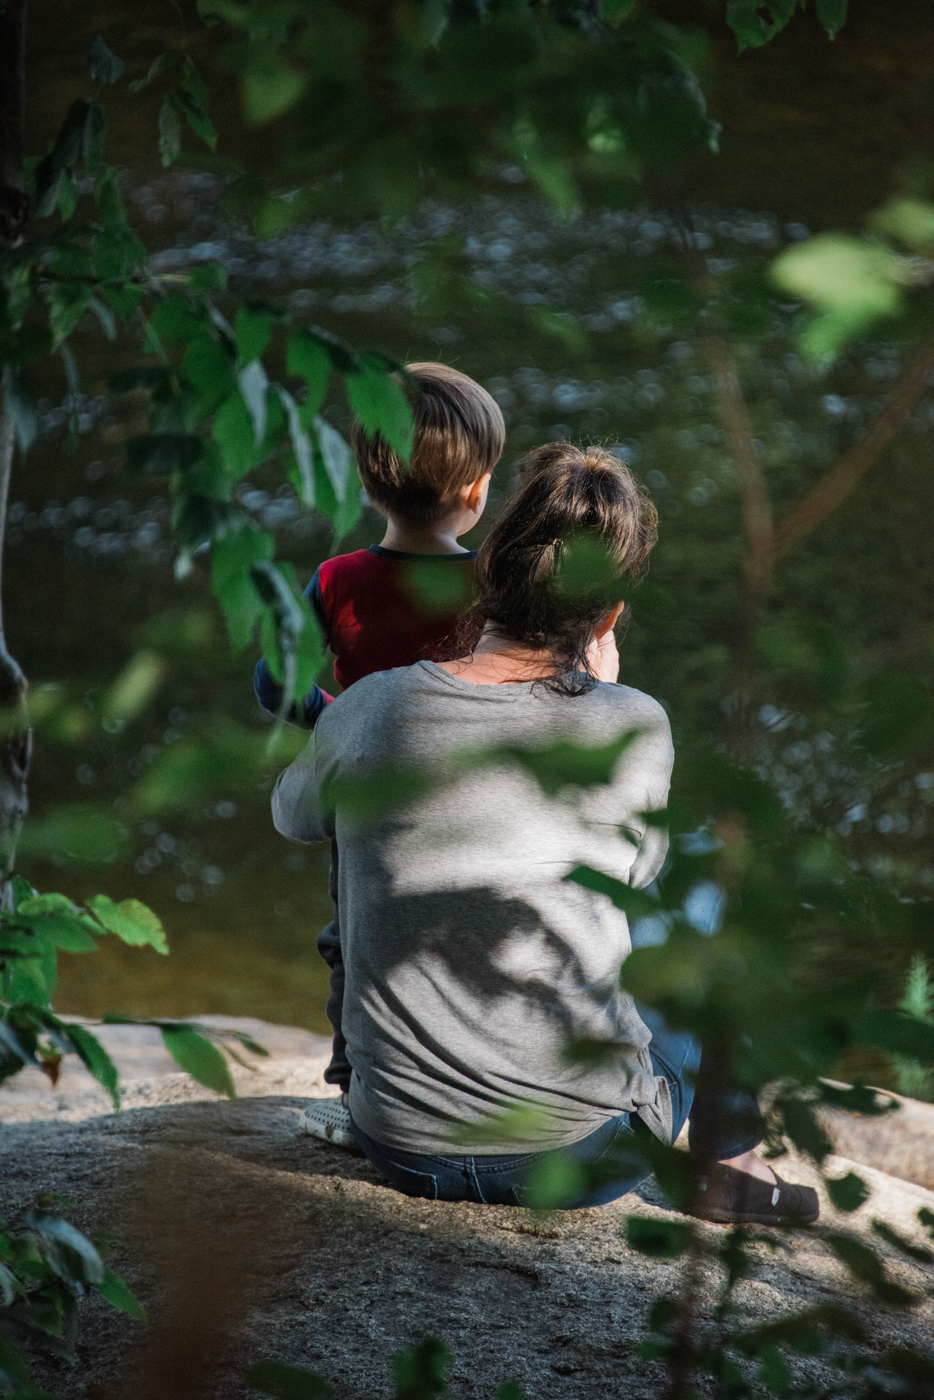 grandma and grandson sit by the pemigewasset river in new hampshire, photographed by jamie bannon photography.